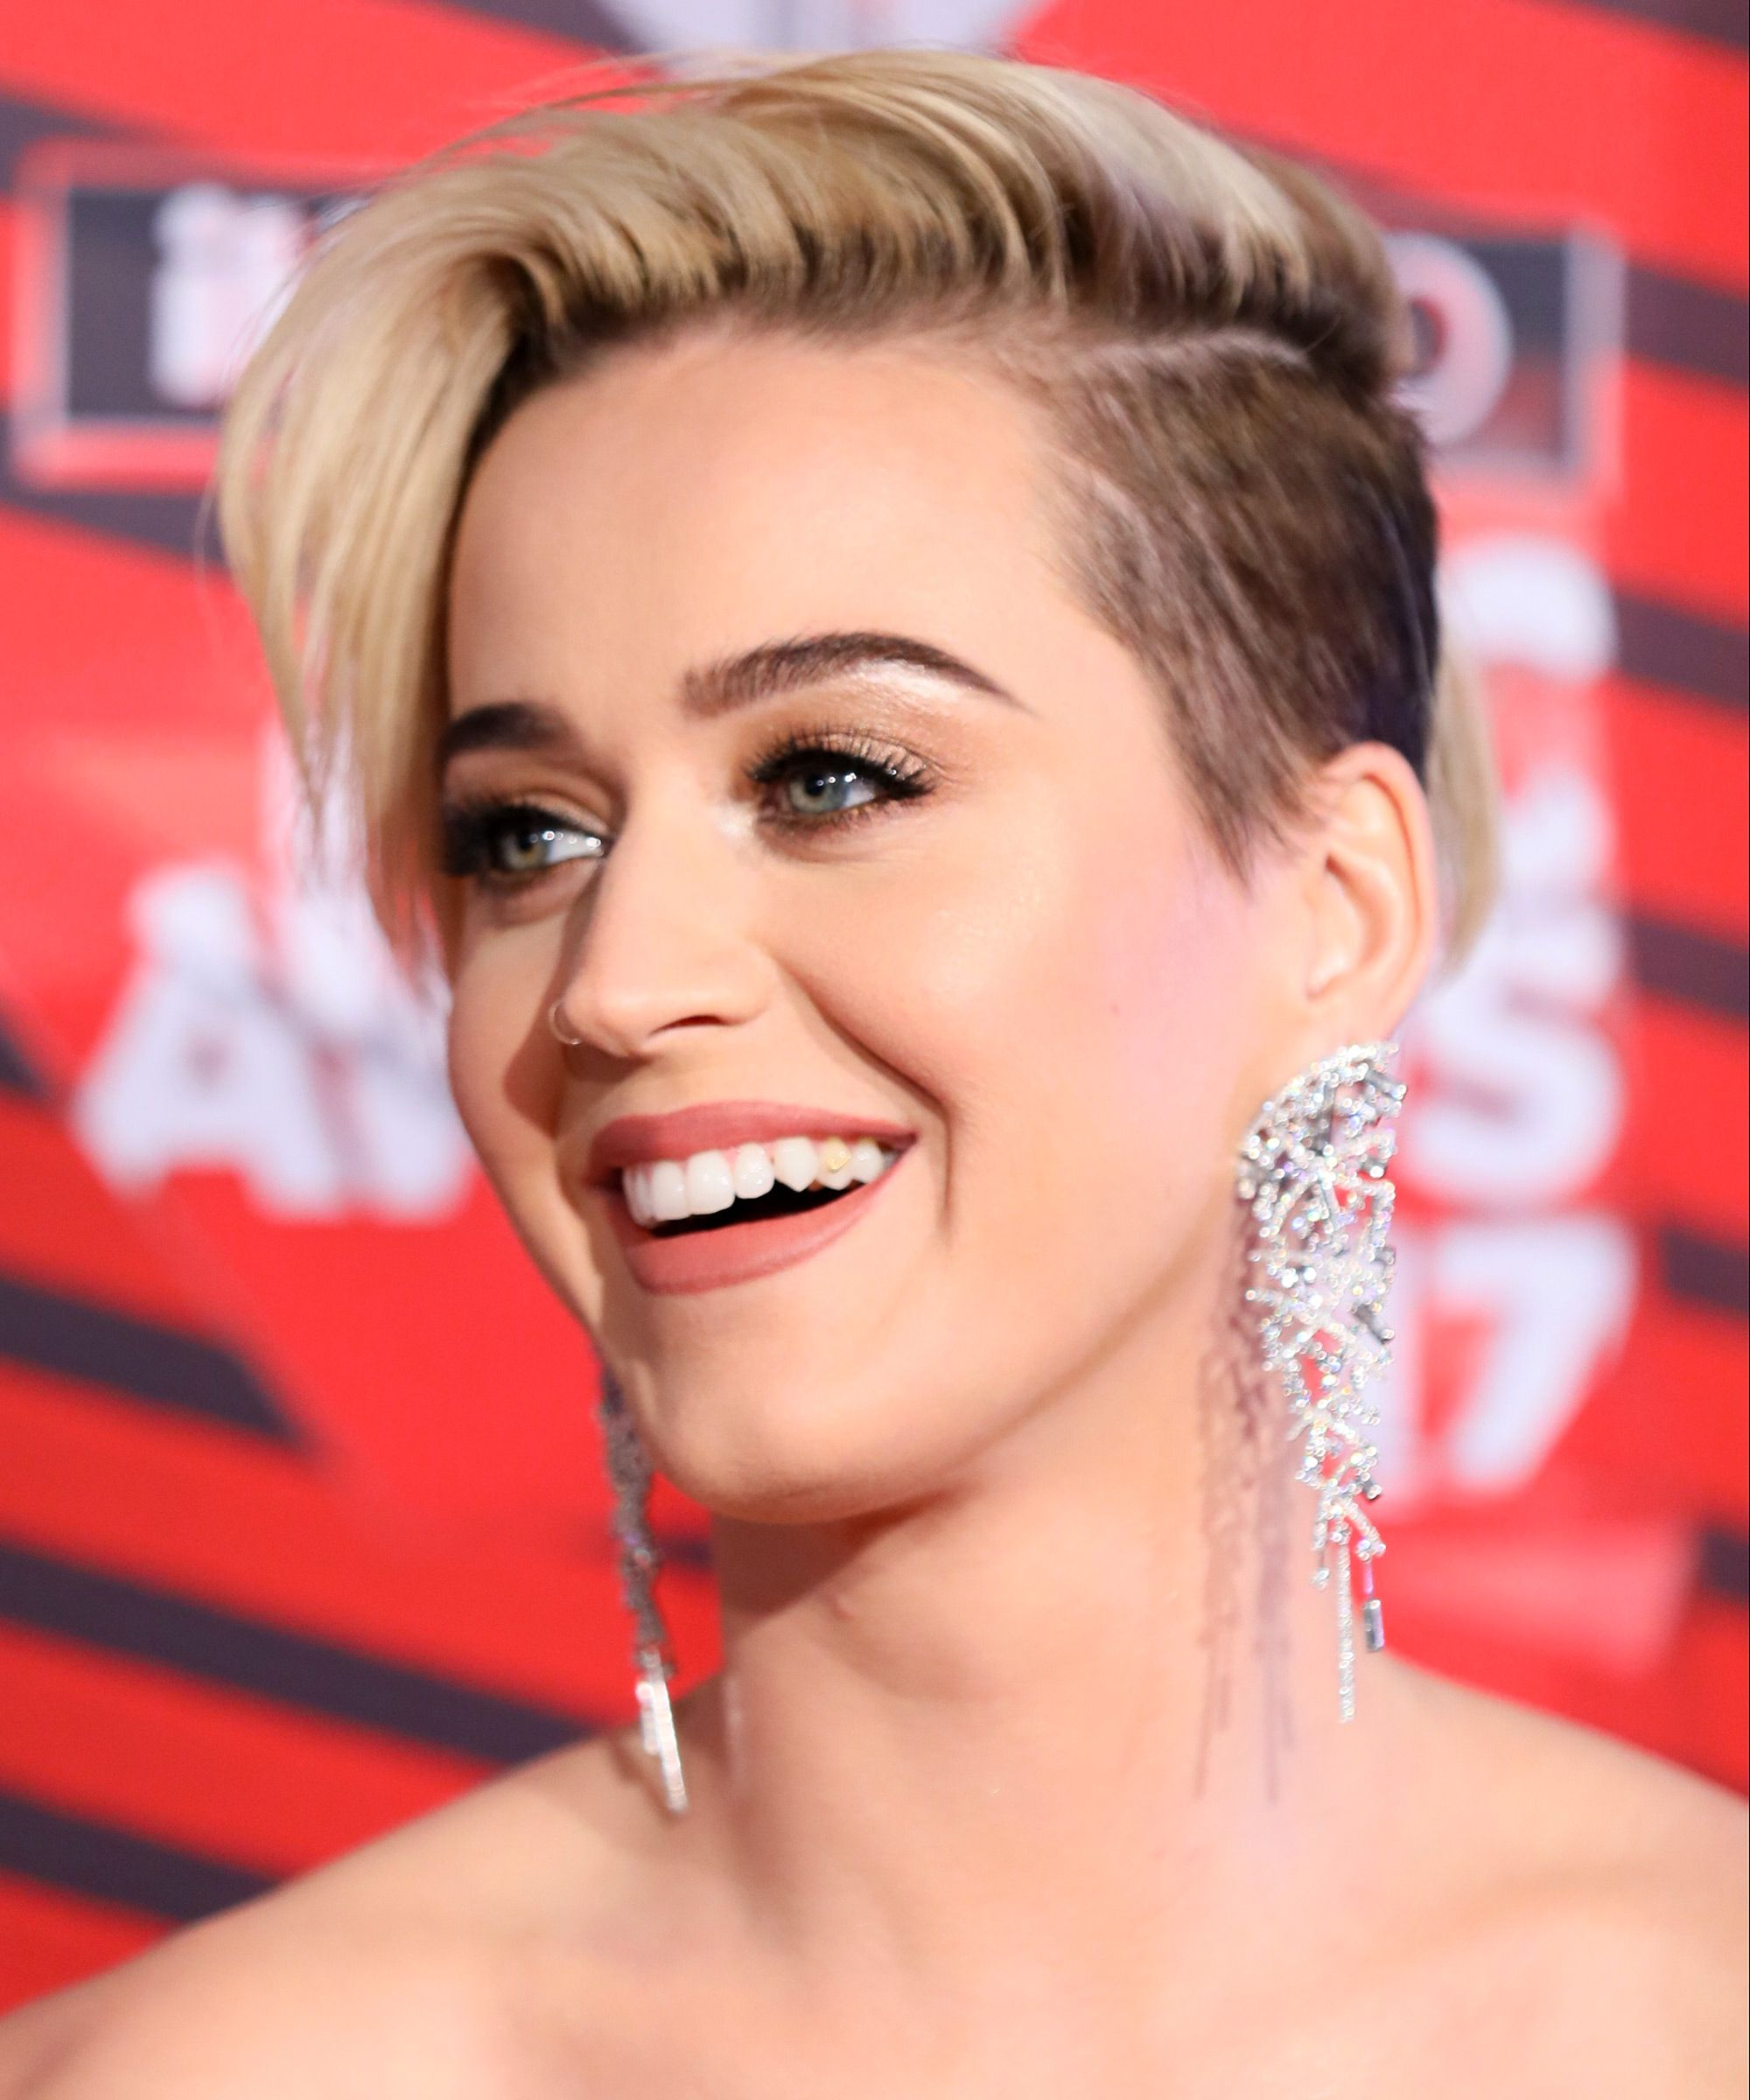 Katy Perry nouvelle blonde pixie coupe de cheveux 2017